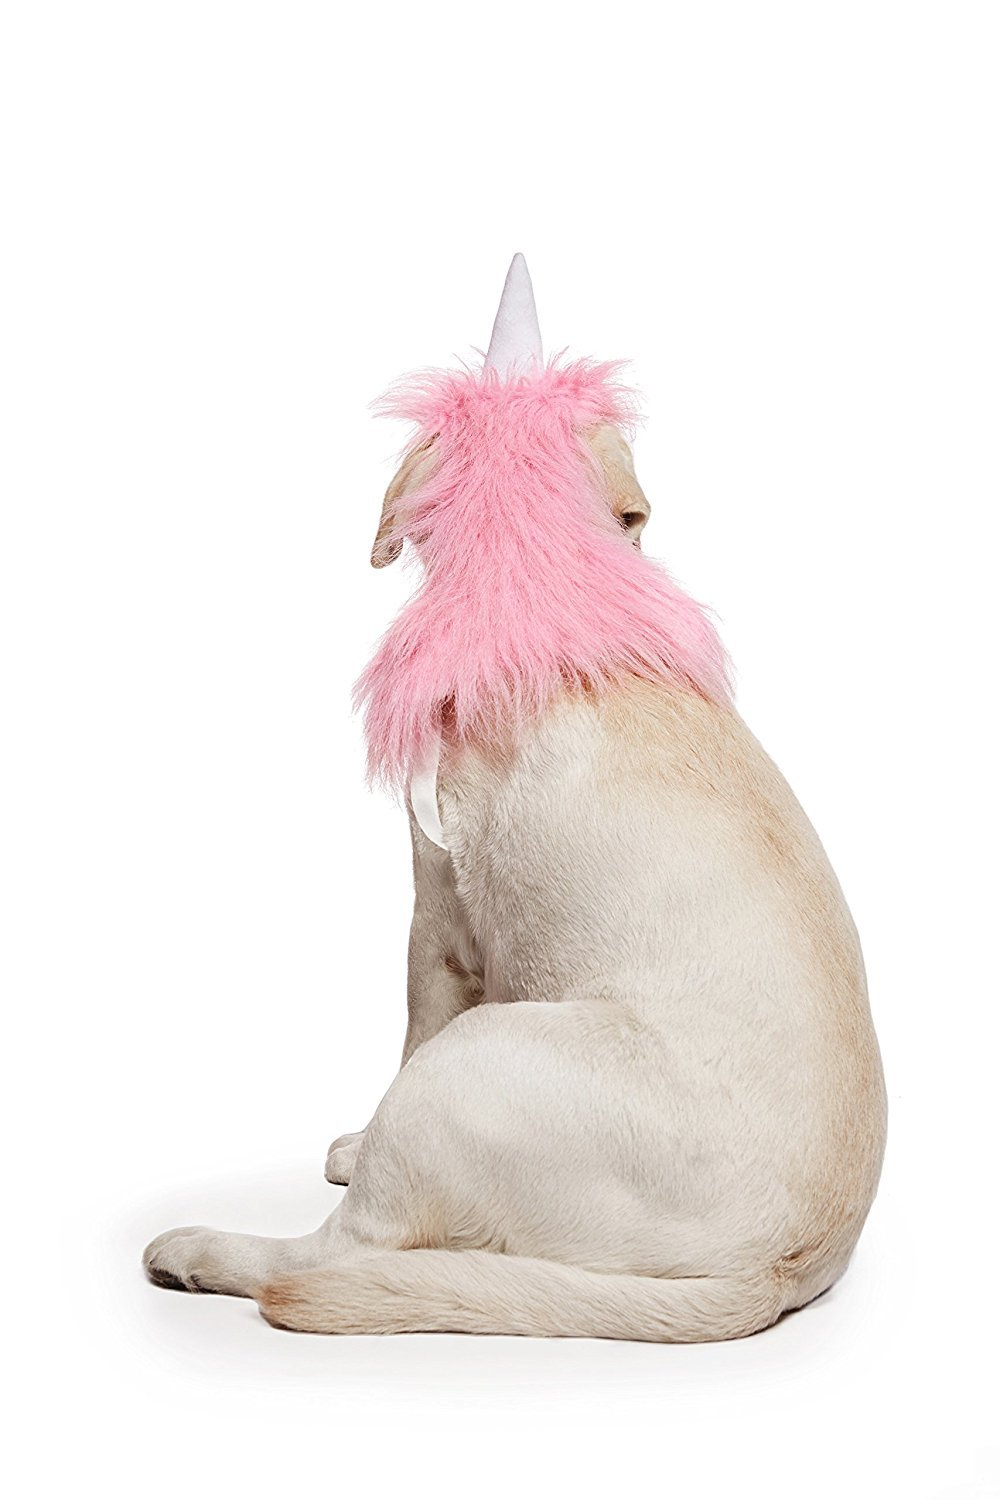 Nothing But Love Pink Unicorn Costume for Dogs Pups Mane /& Horn Headdress Wig Pet Dress Up Party